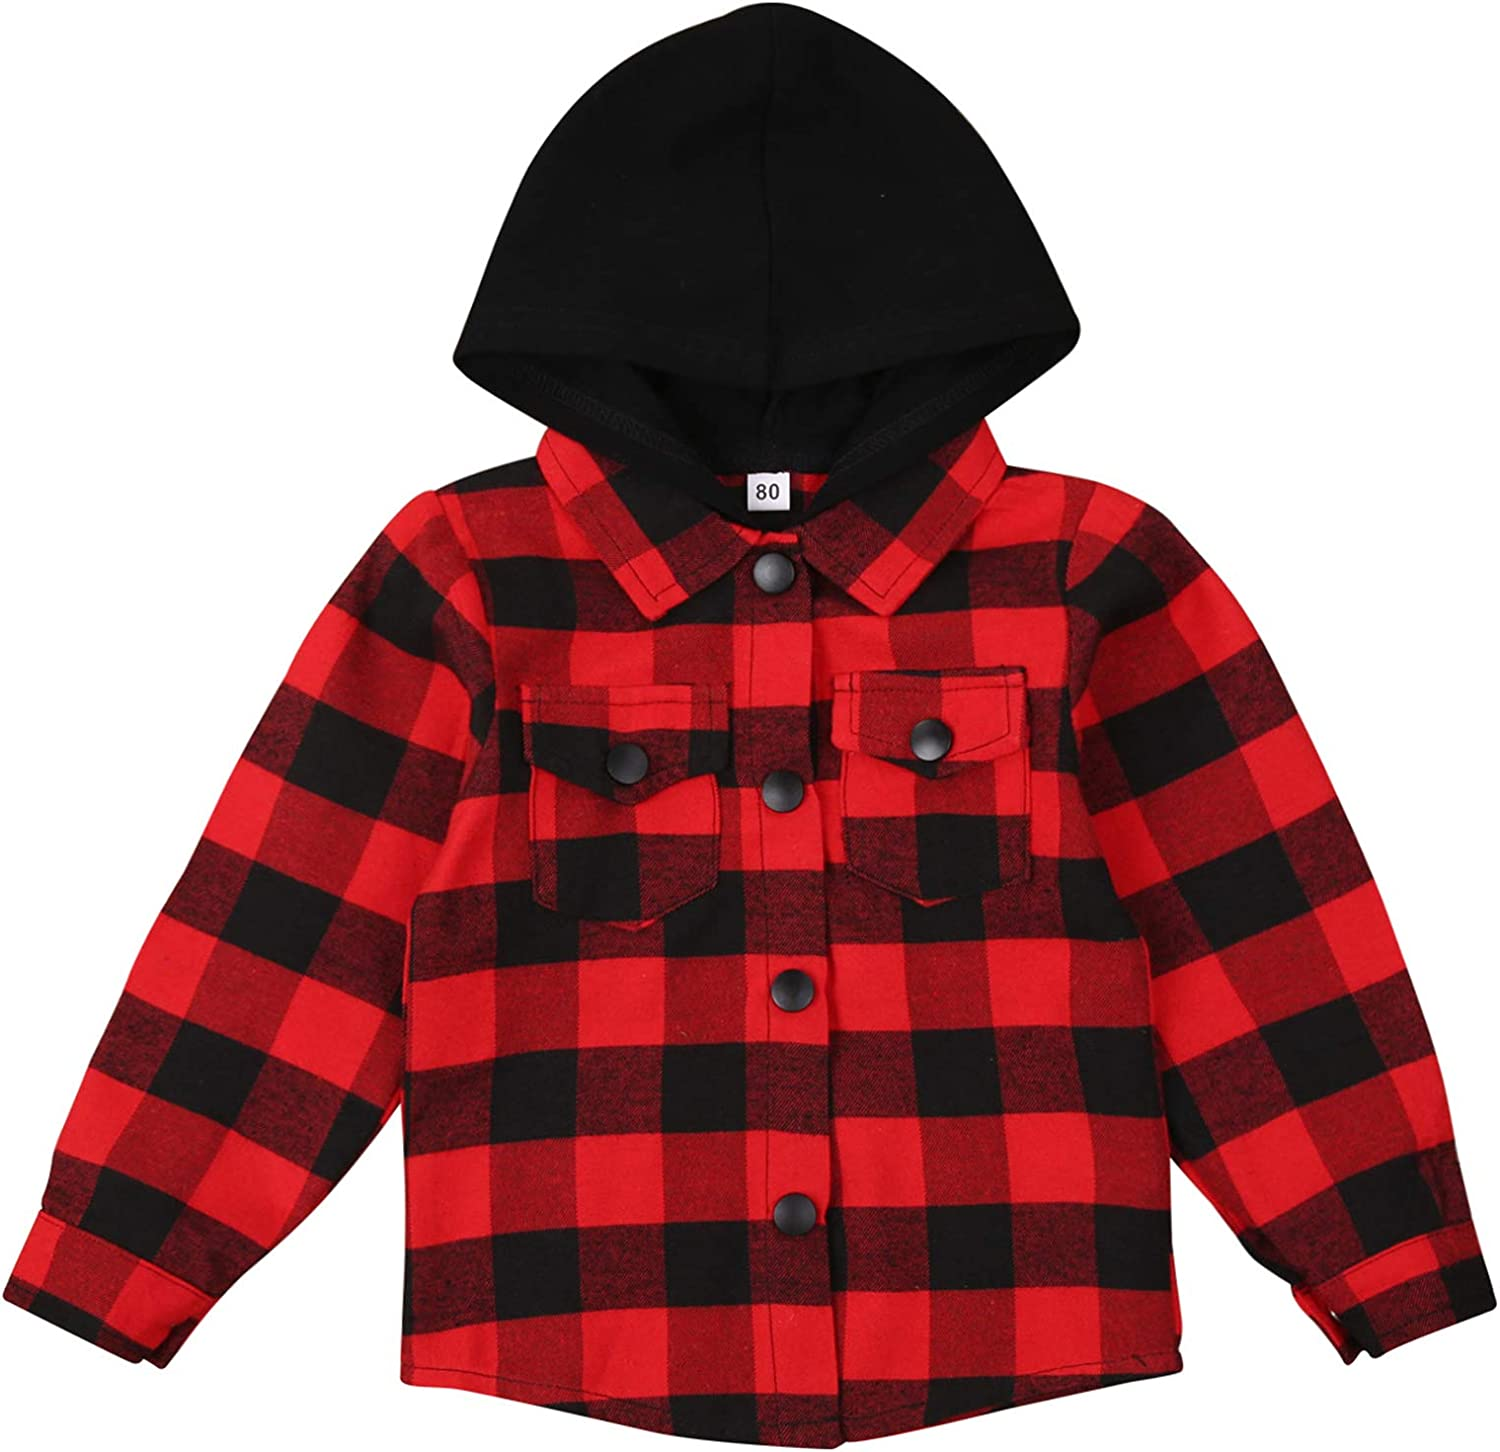 goowrom Toddler Baby Boys Button Hoodie Shirt Infant Spring Fall Winter Thin Outerwear